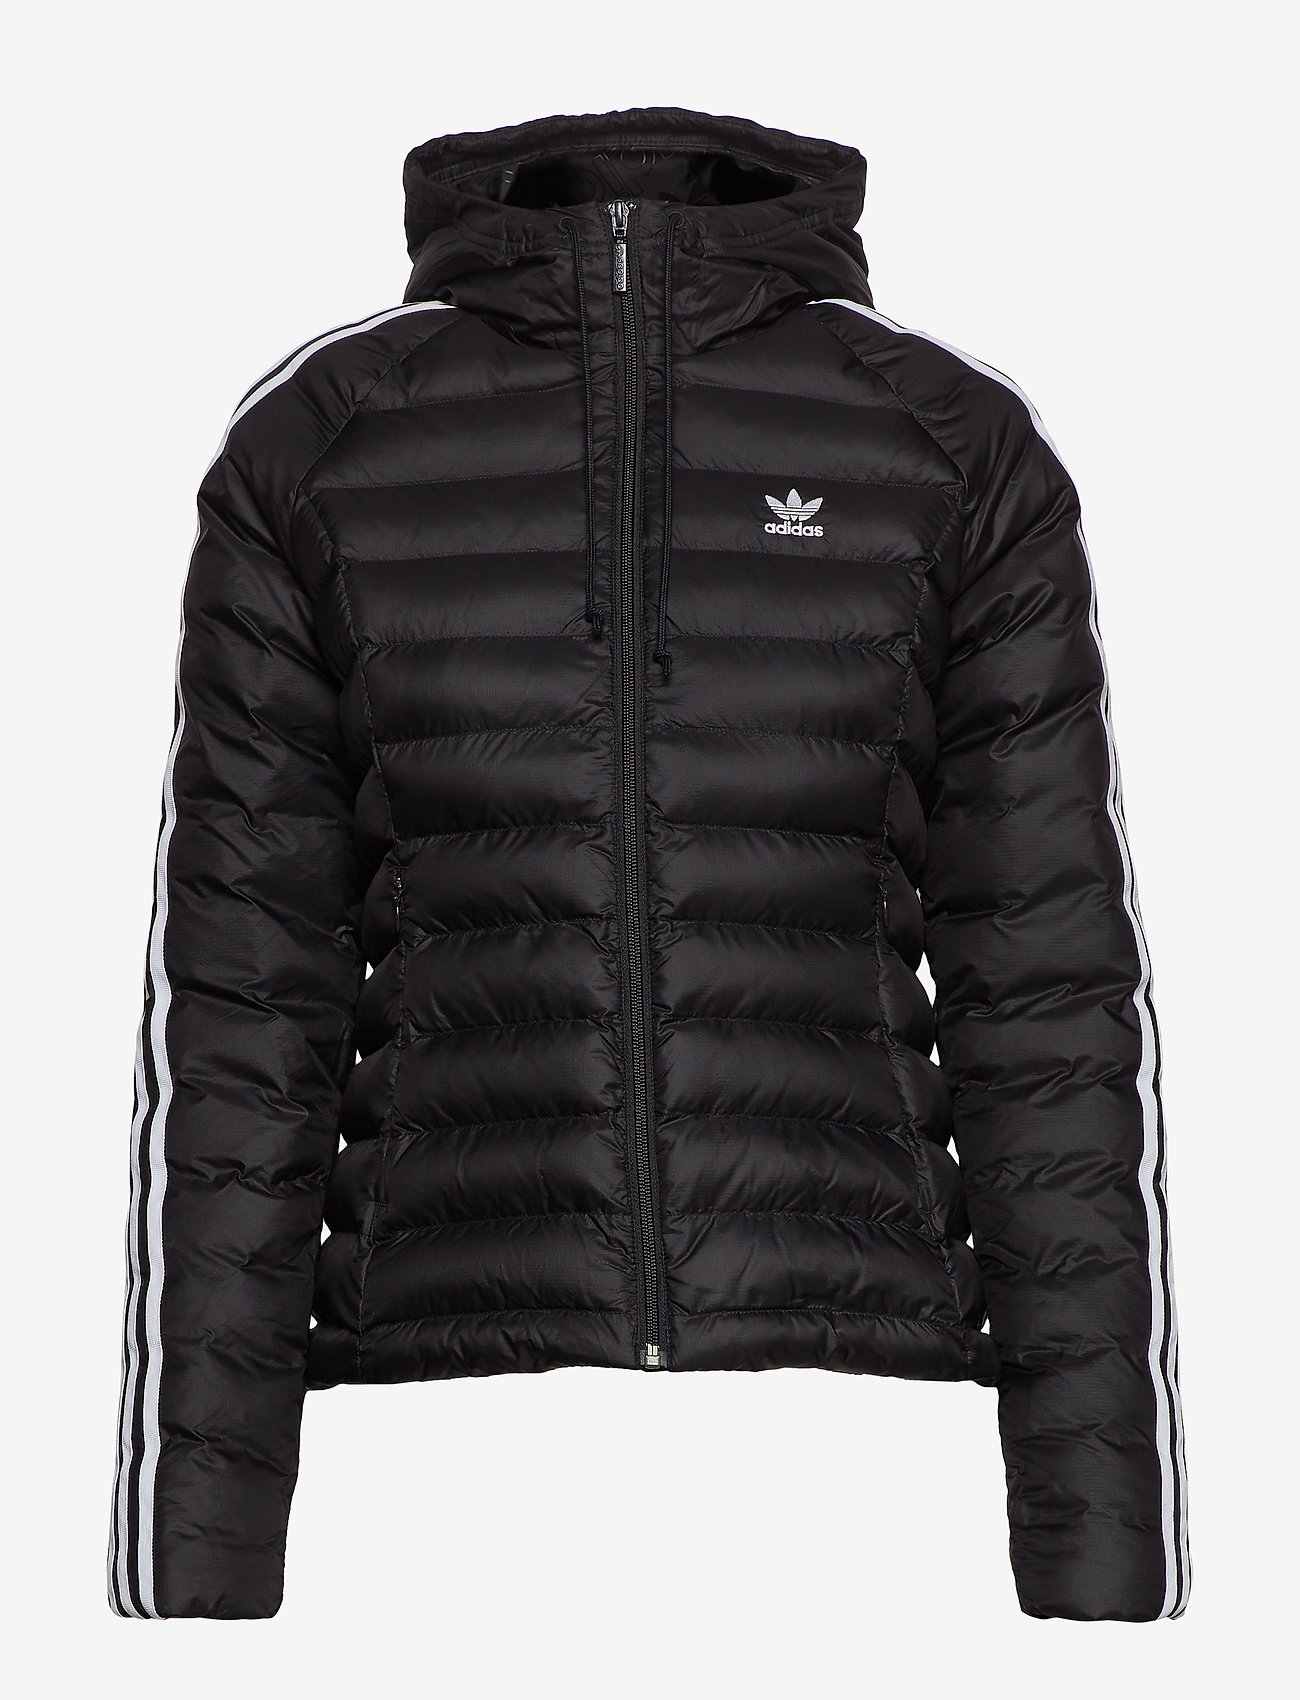 adidas Originals - SLIM JACKET - sports jackets - black - 0